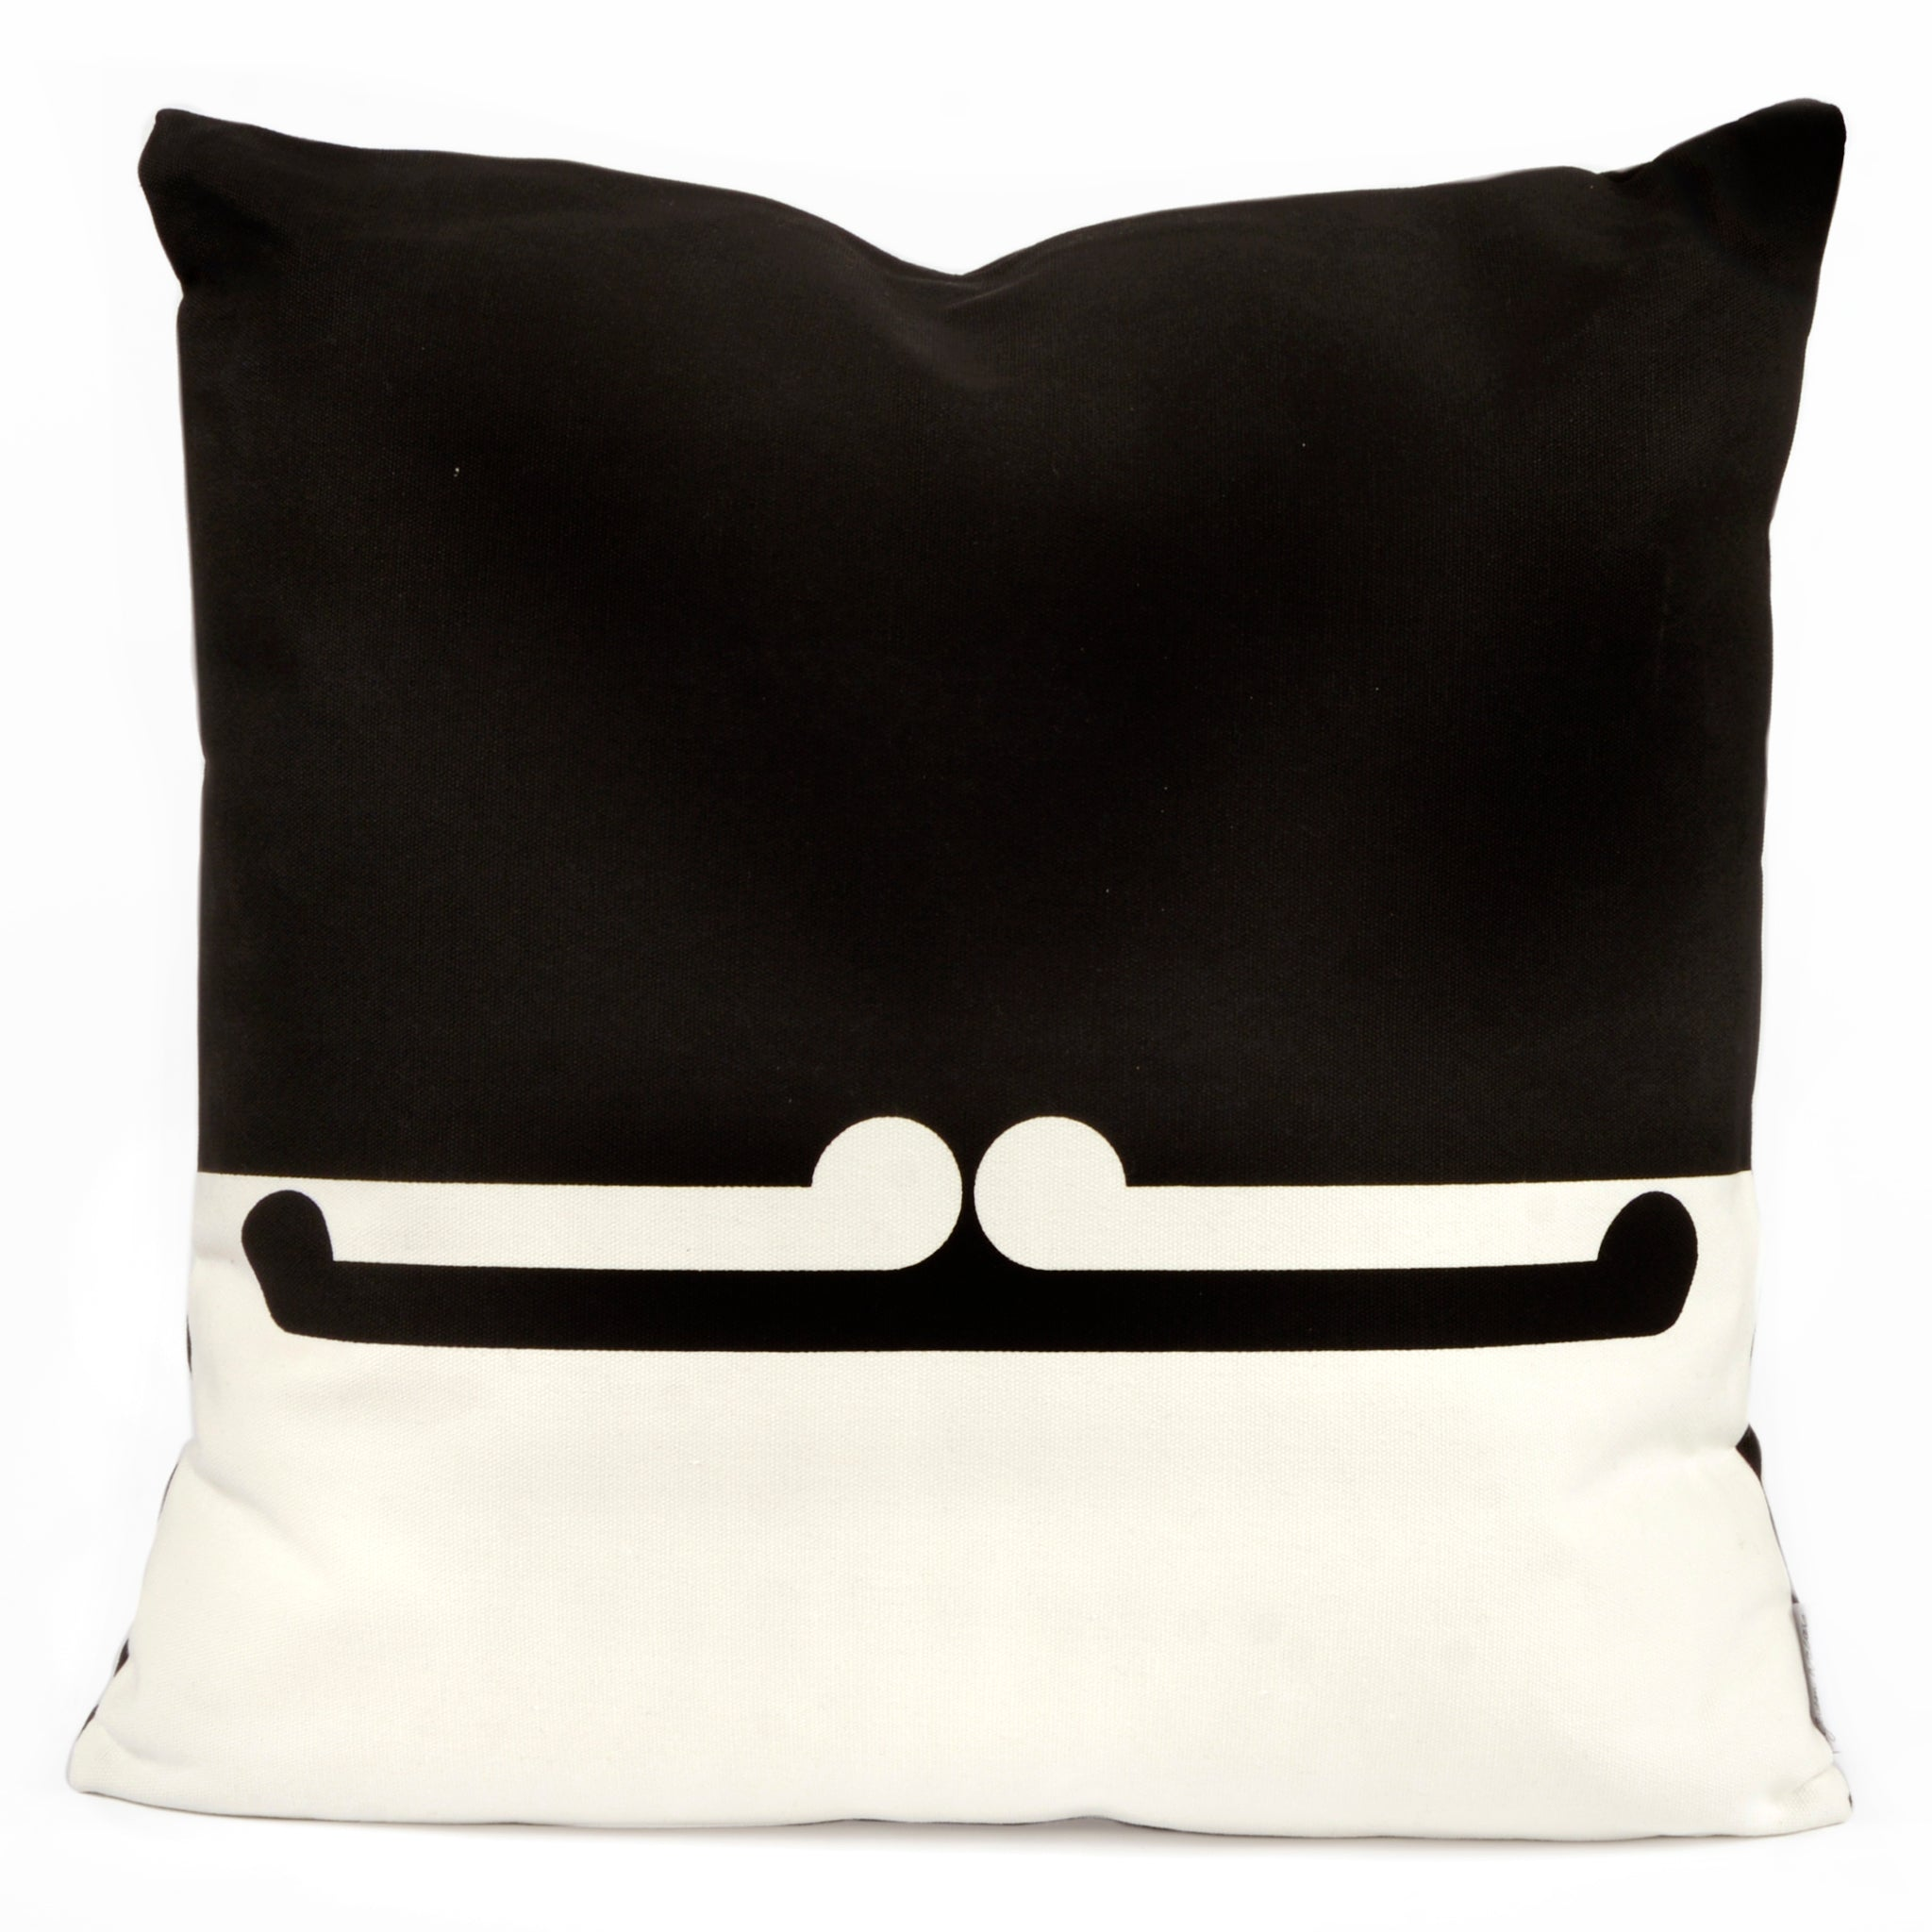 Untitled, 1973 Cushion Image